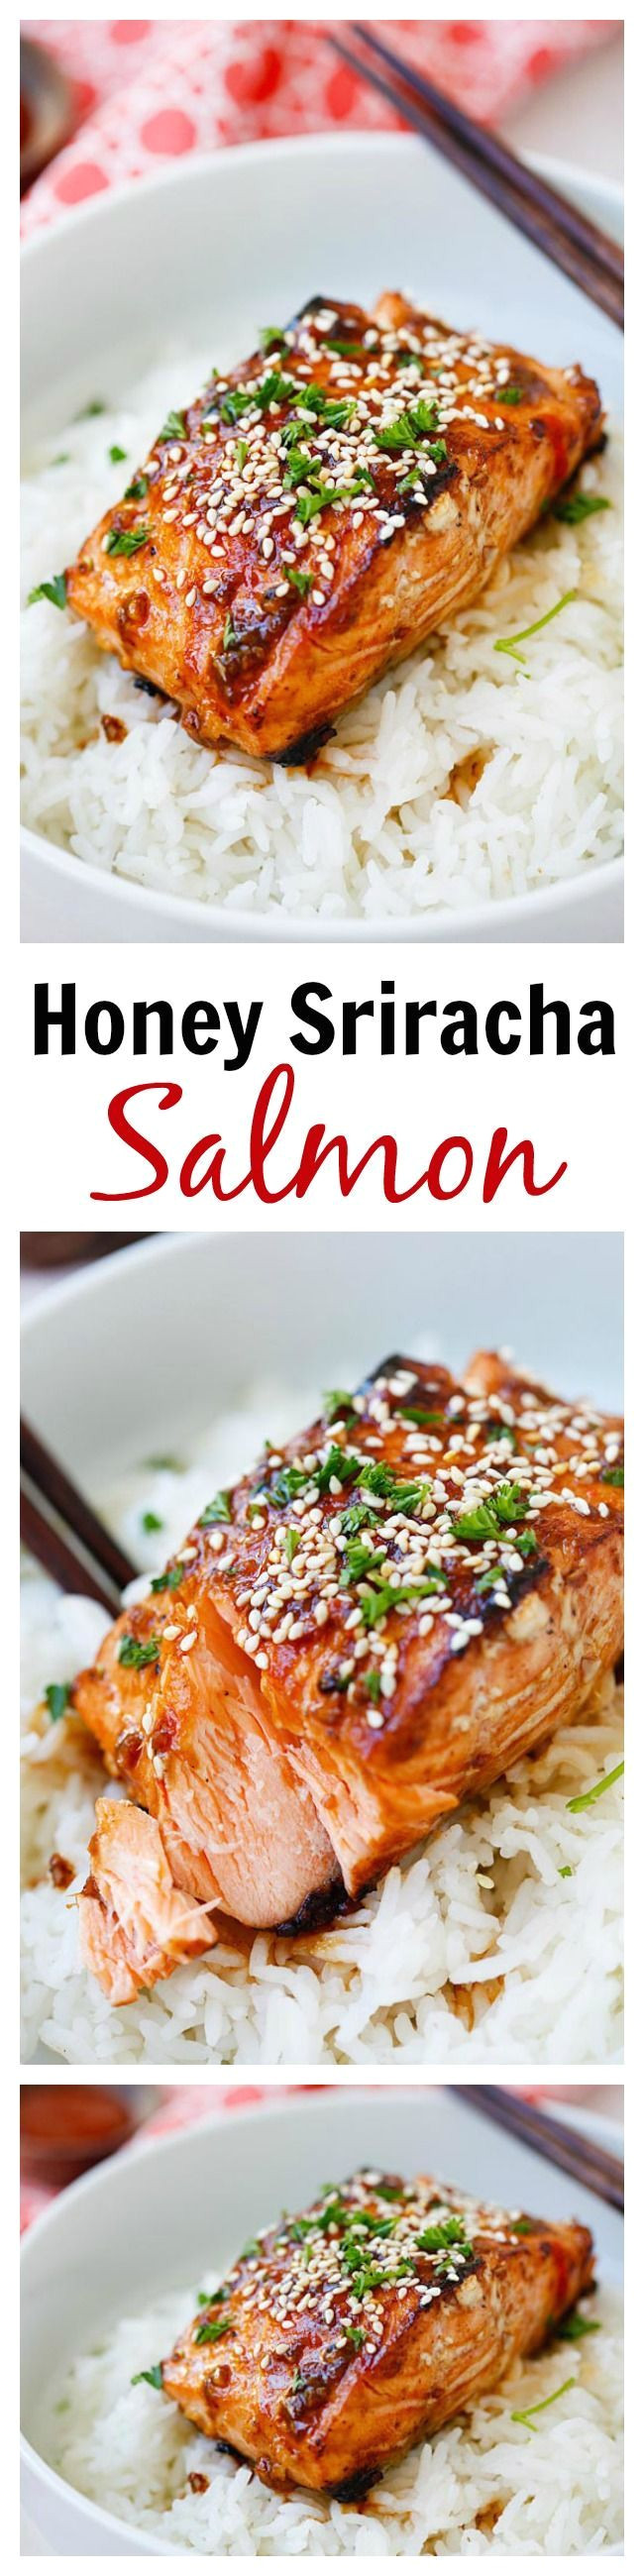 honey sriracha salmon easy spicy sweet and savory this glazed salmon